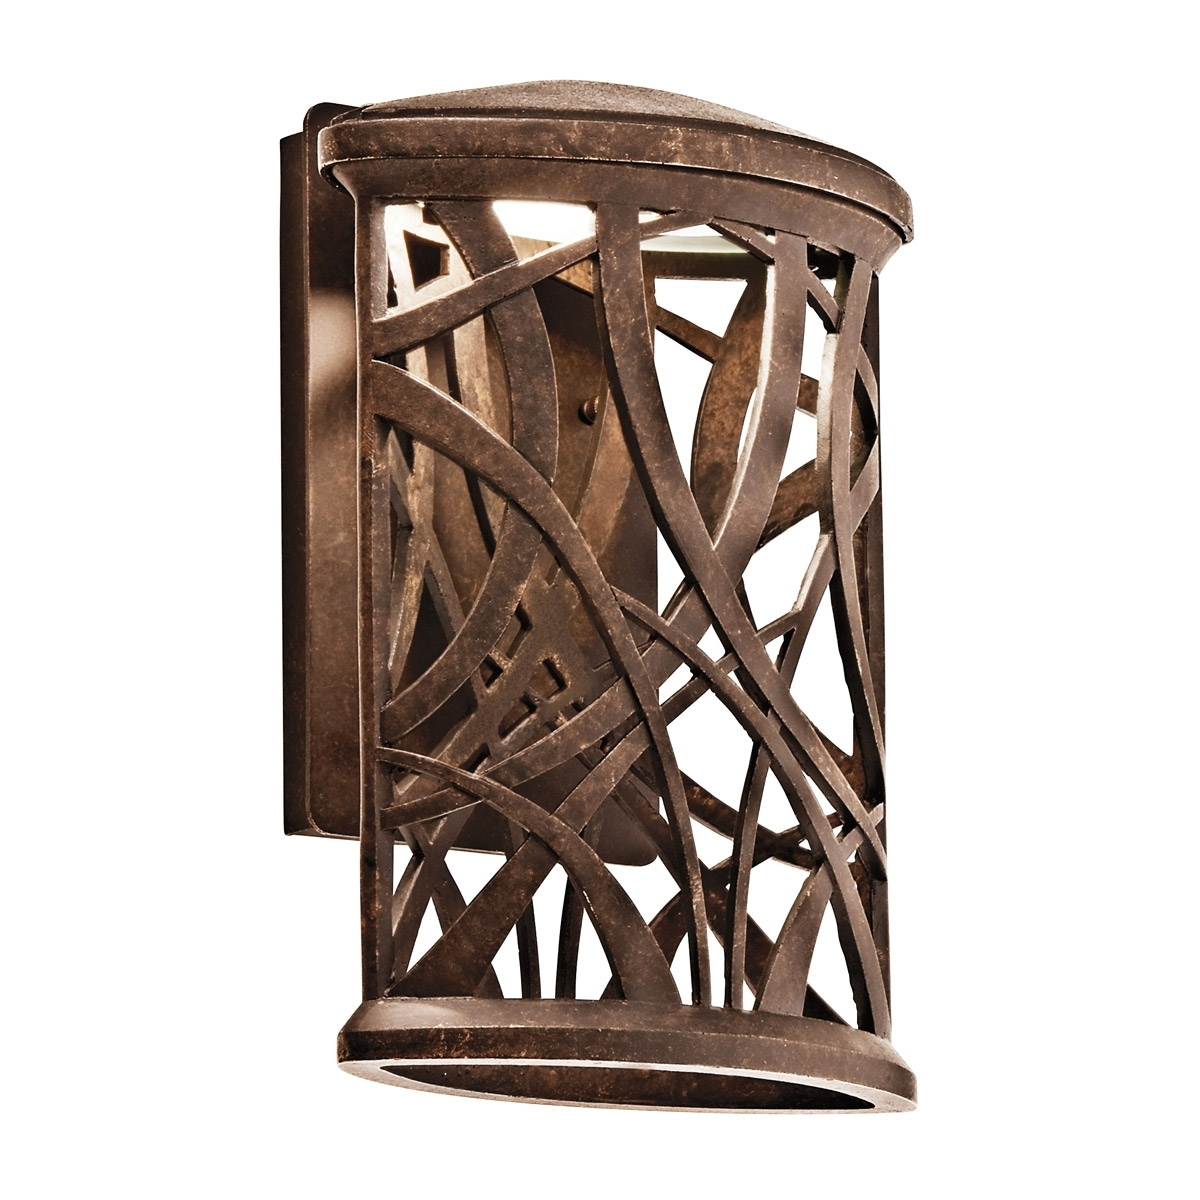 49249Agzled Maya Palm Energy Efficient Dark Sky Outdoor Wall Sconce Pertaining To Dark Sky Outdoor Wall Lighting (View 15 of 15)